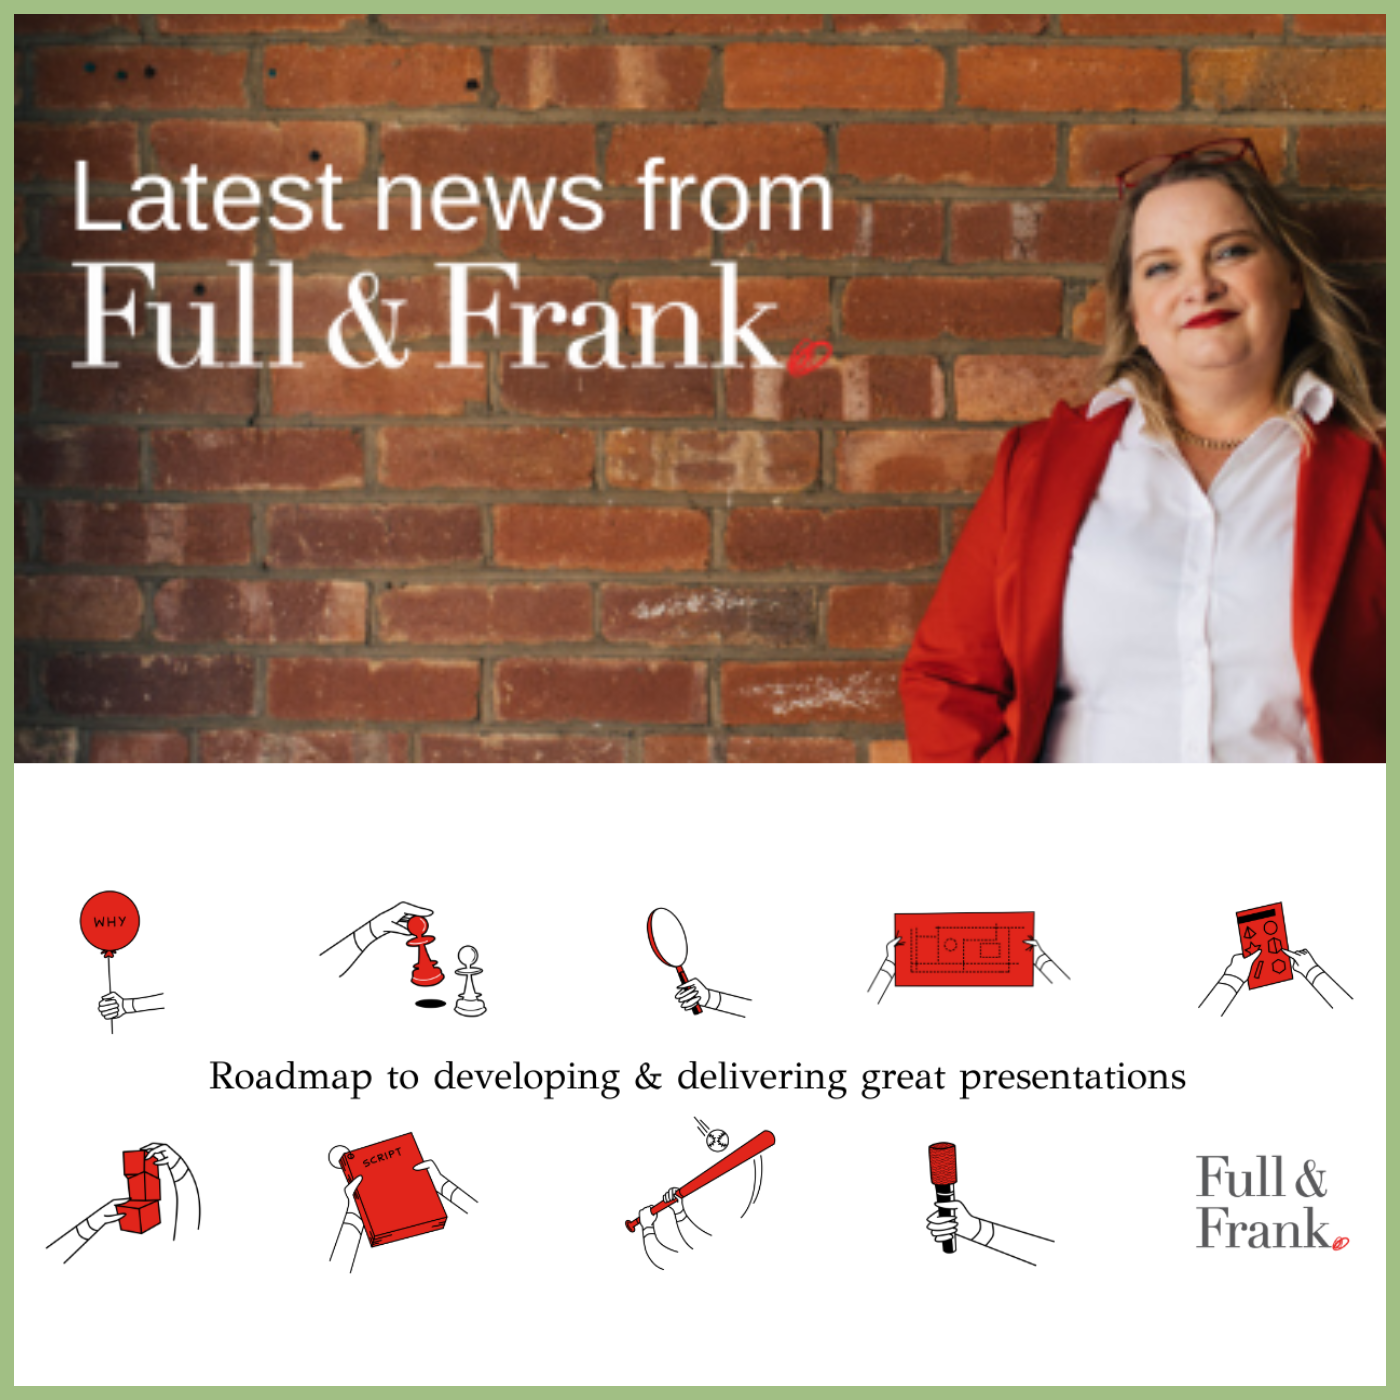 power woman wearing a white shirt and red blazer standing against brick wall - Juanita Wheeler from Full and Frank for the cover of Viva La Flora Live Podcast